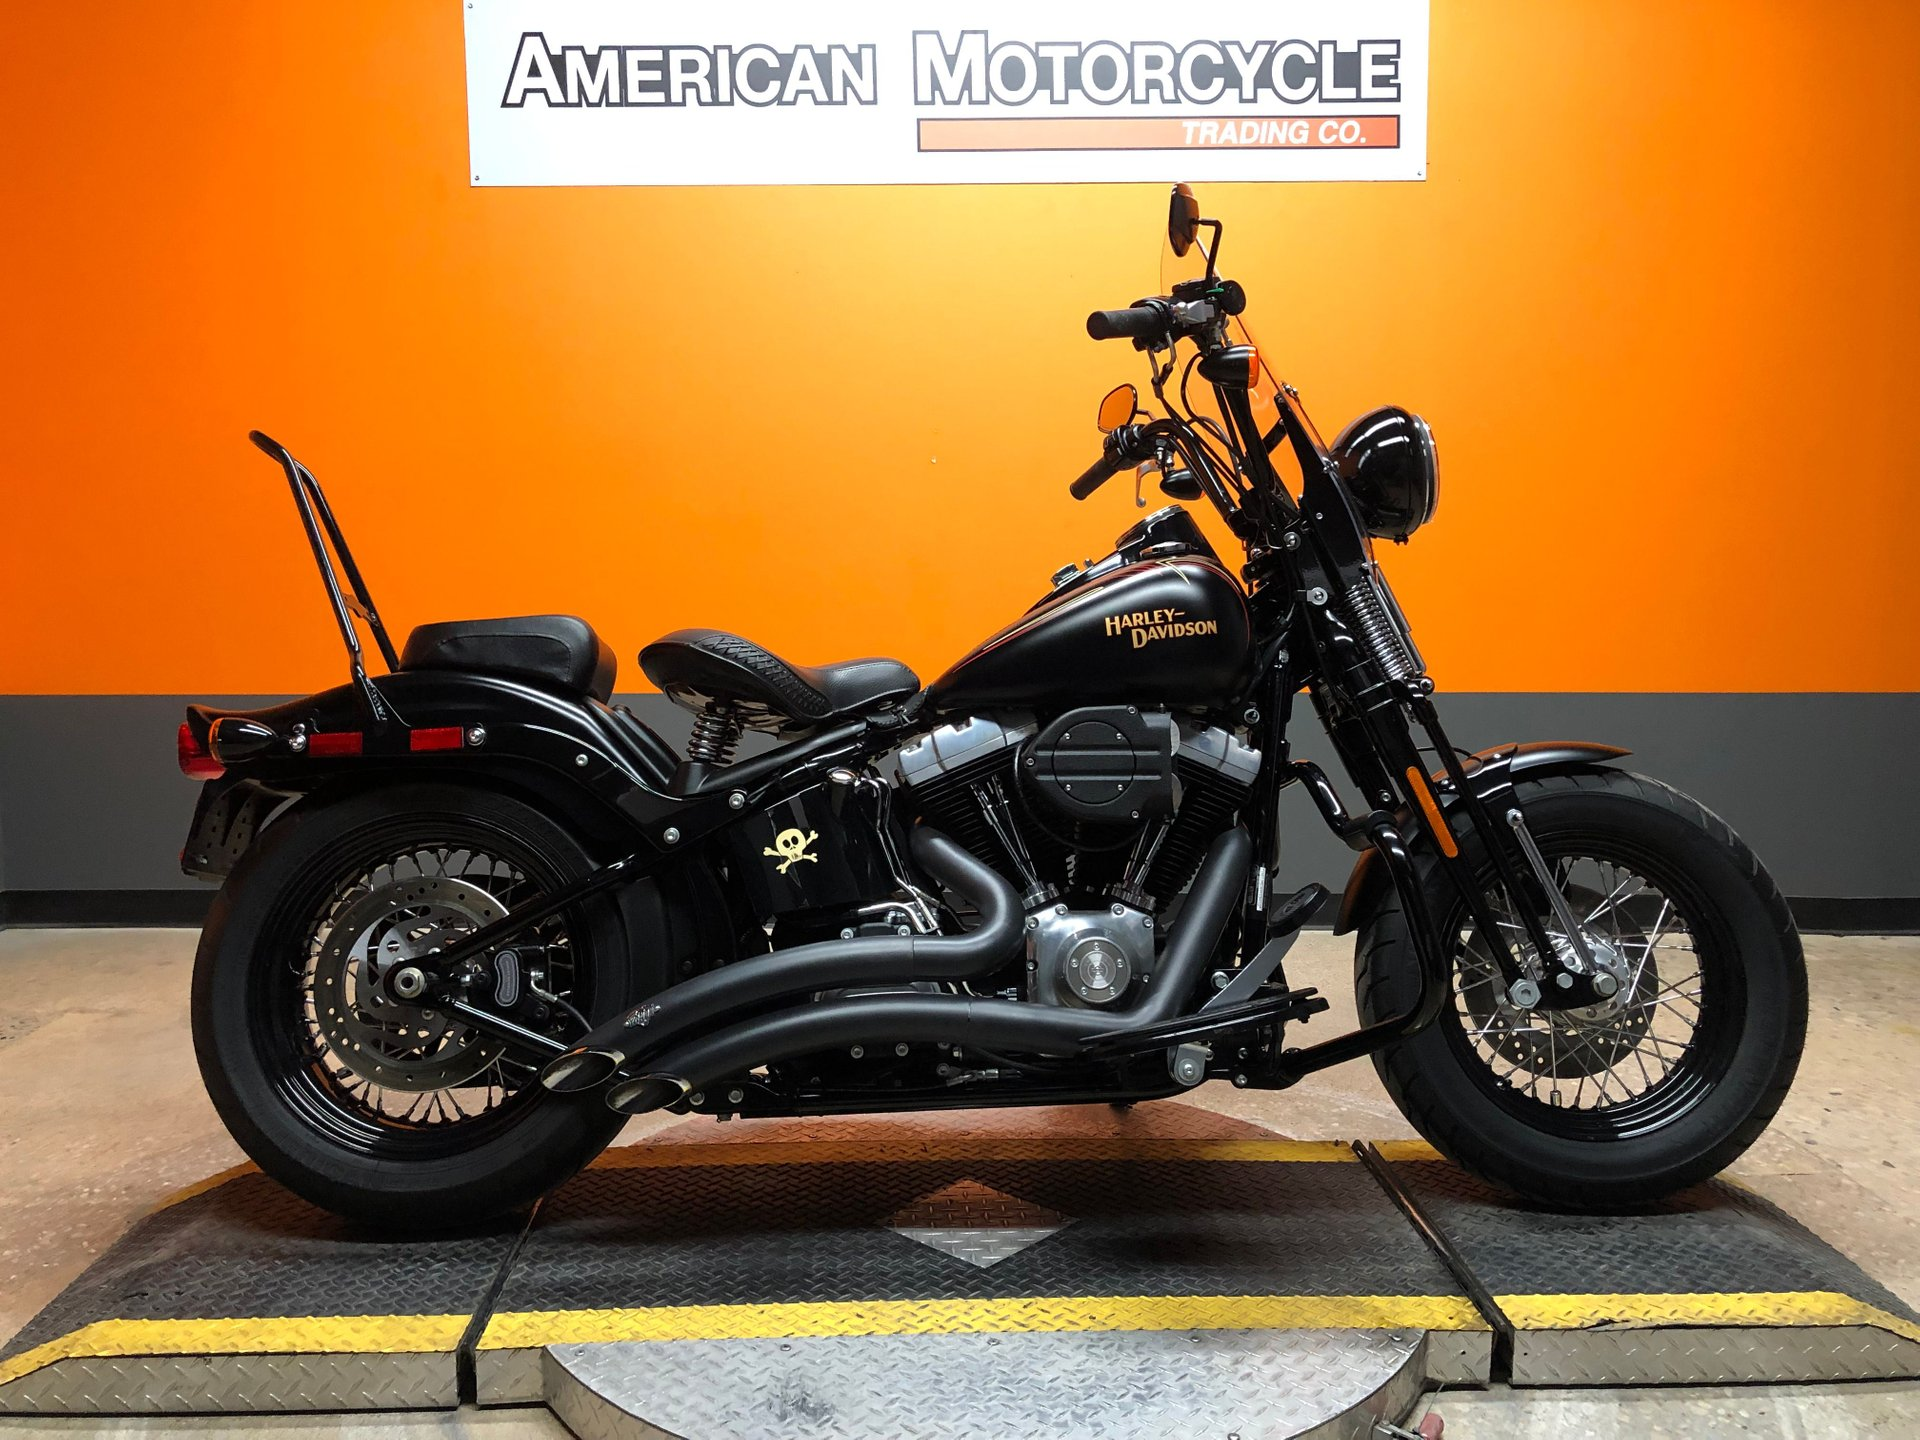 2009 Harley-Davidson Softail Crossbones - FLSTSB for sale